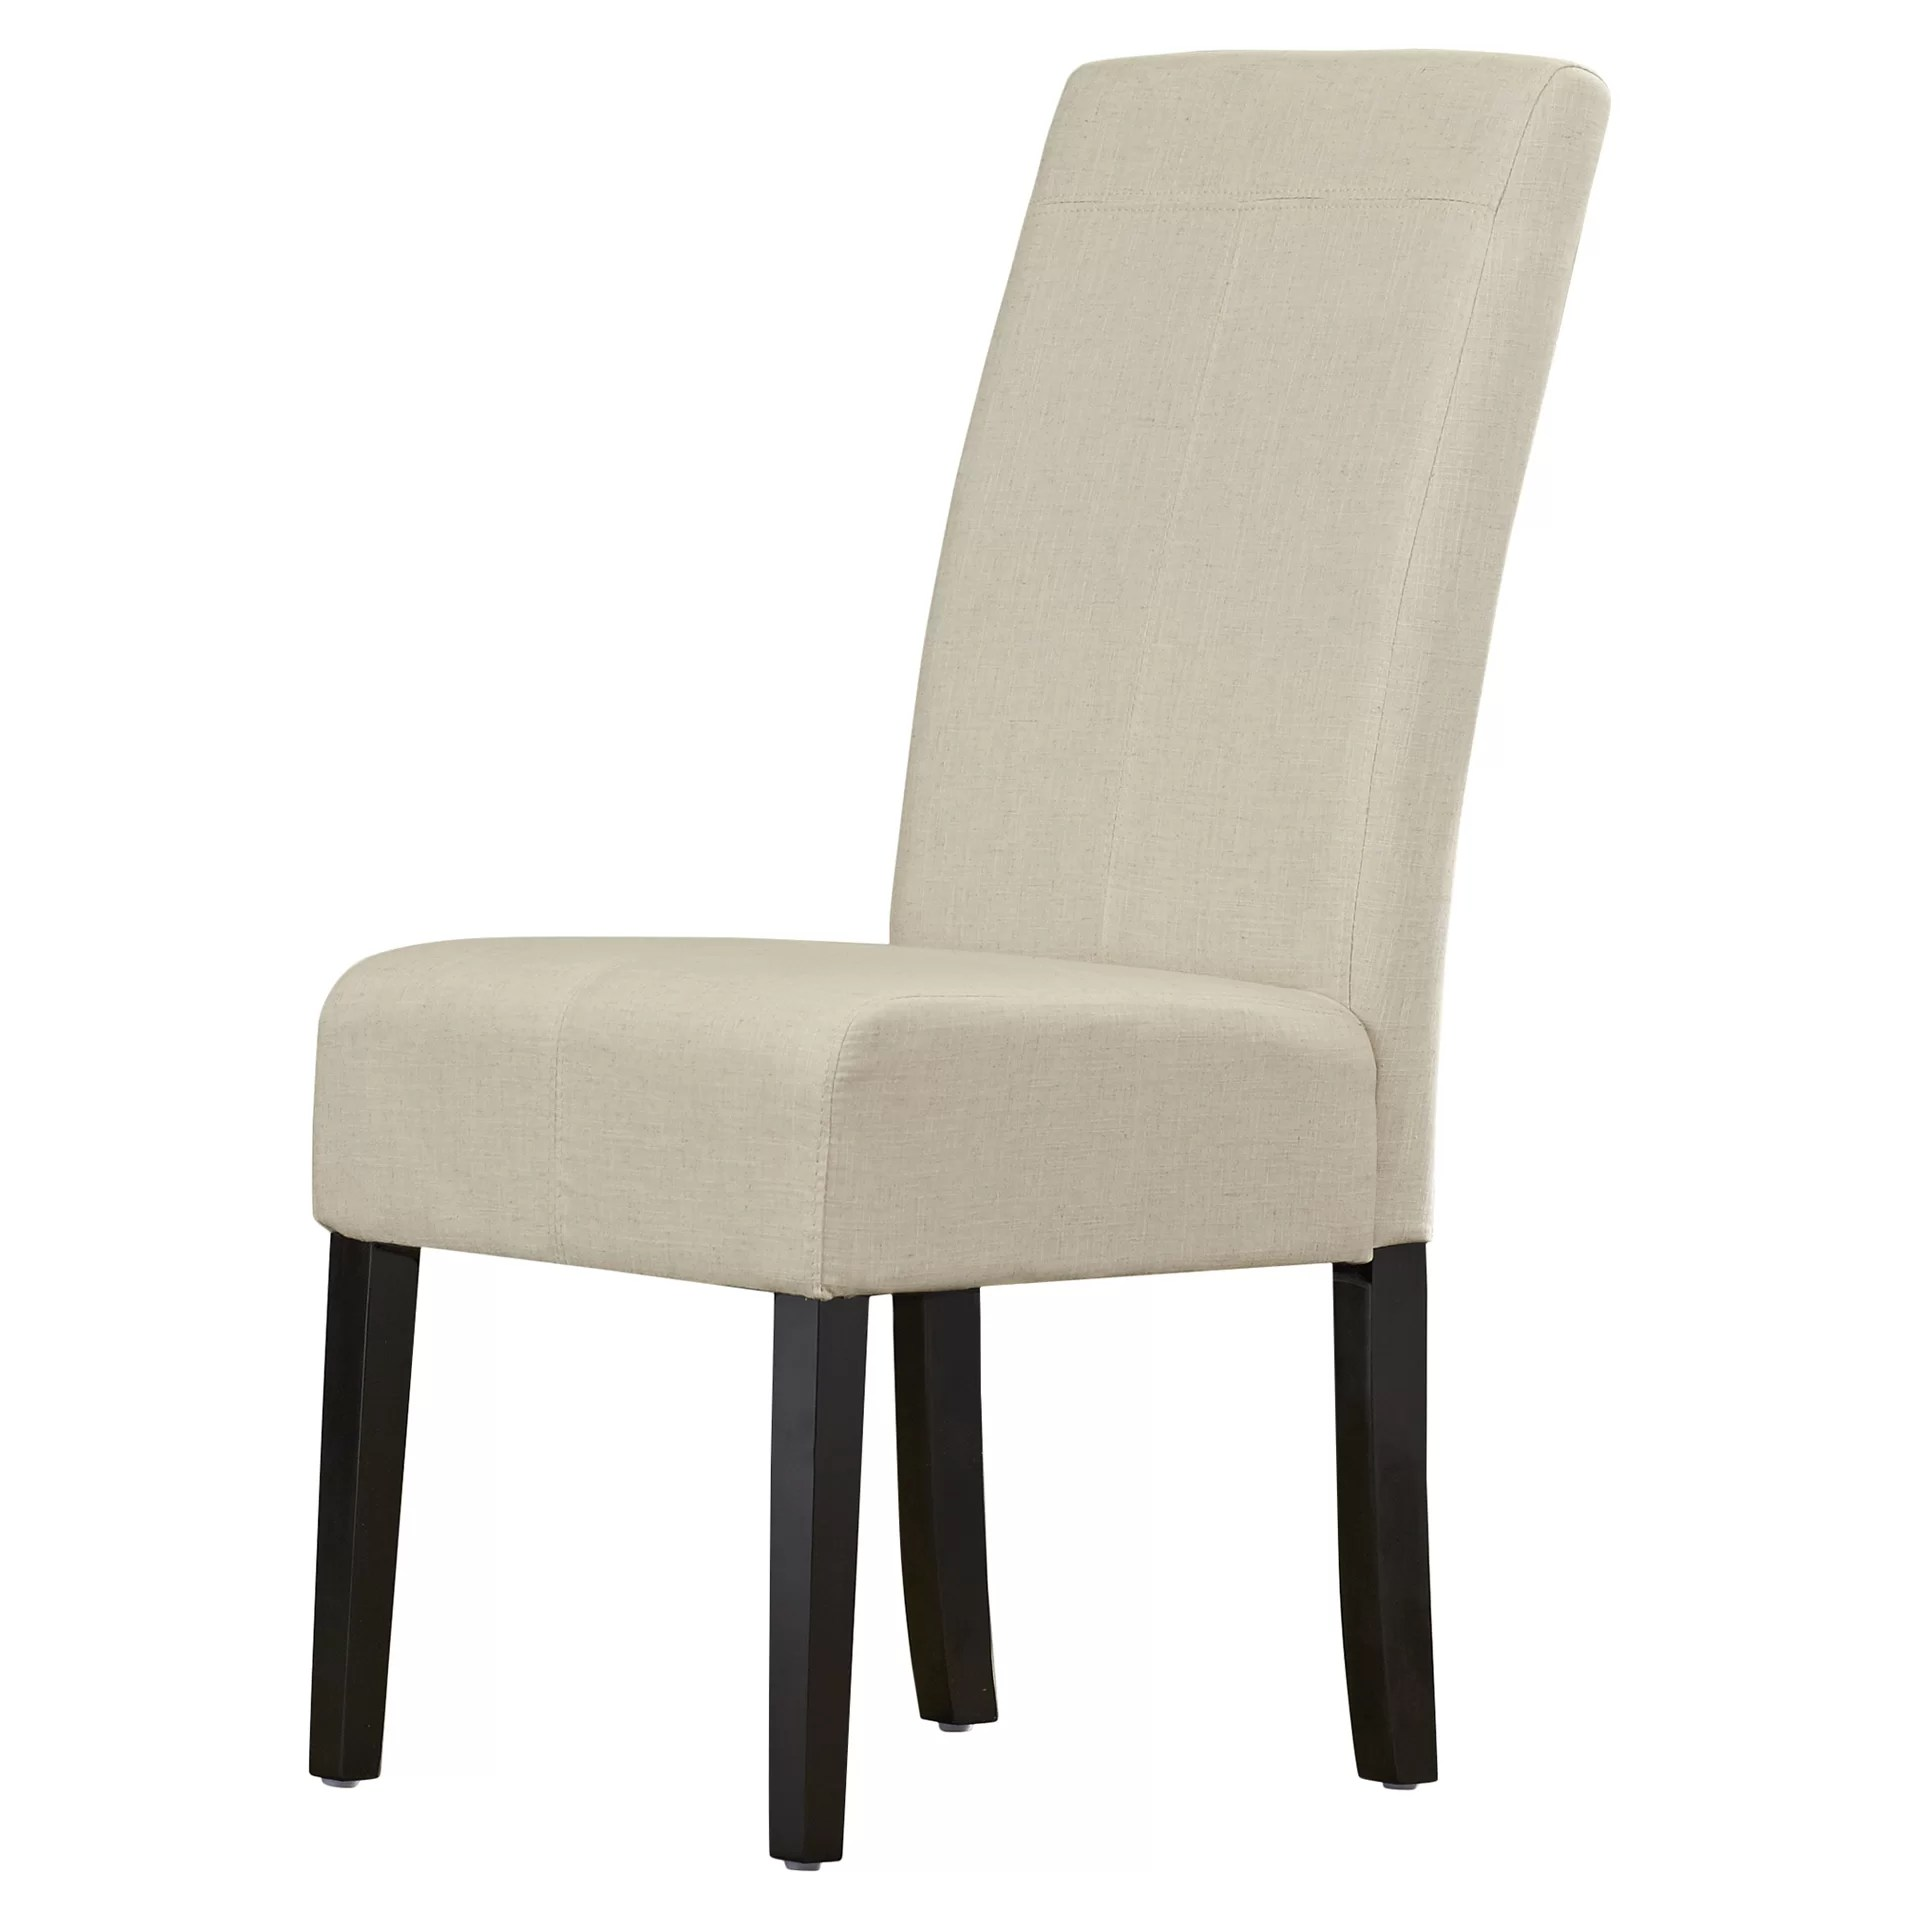 Andover Mills Acropolis TStitch Upholstered Side Chair